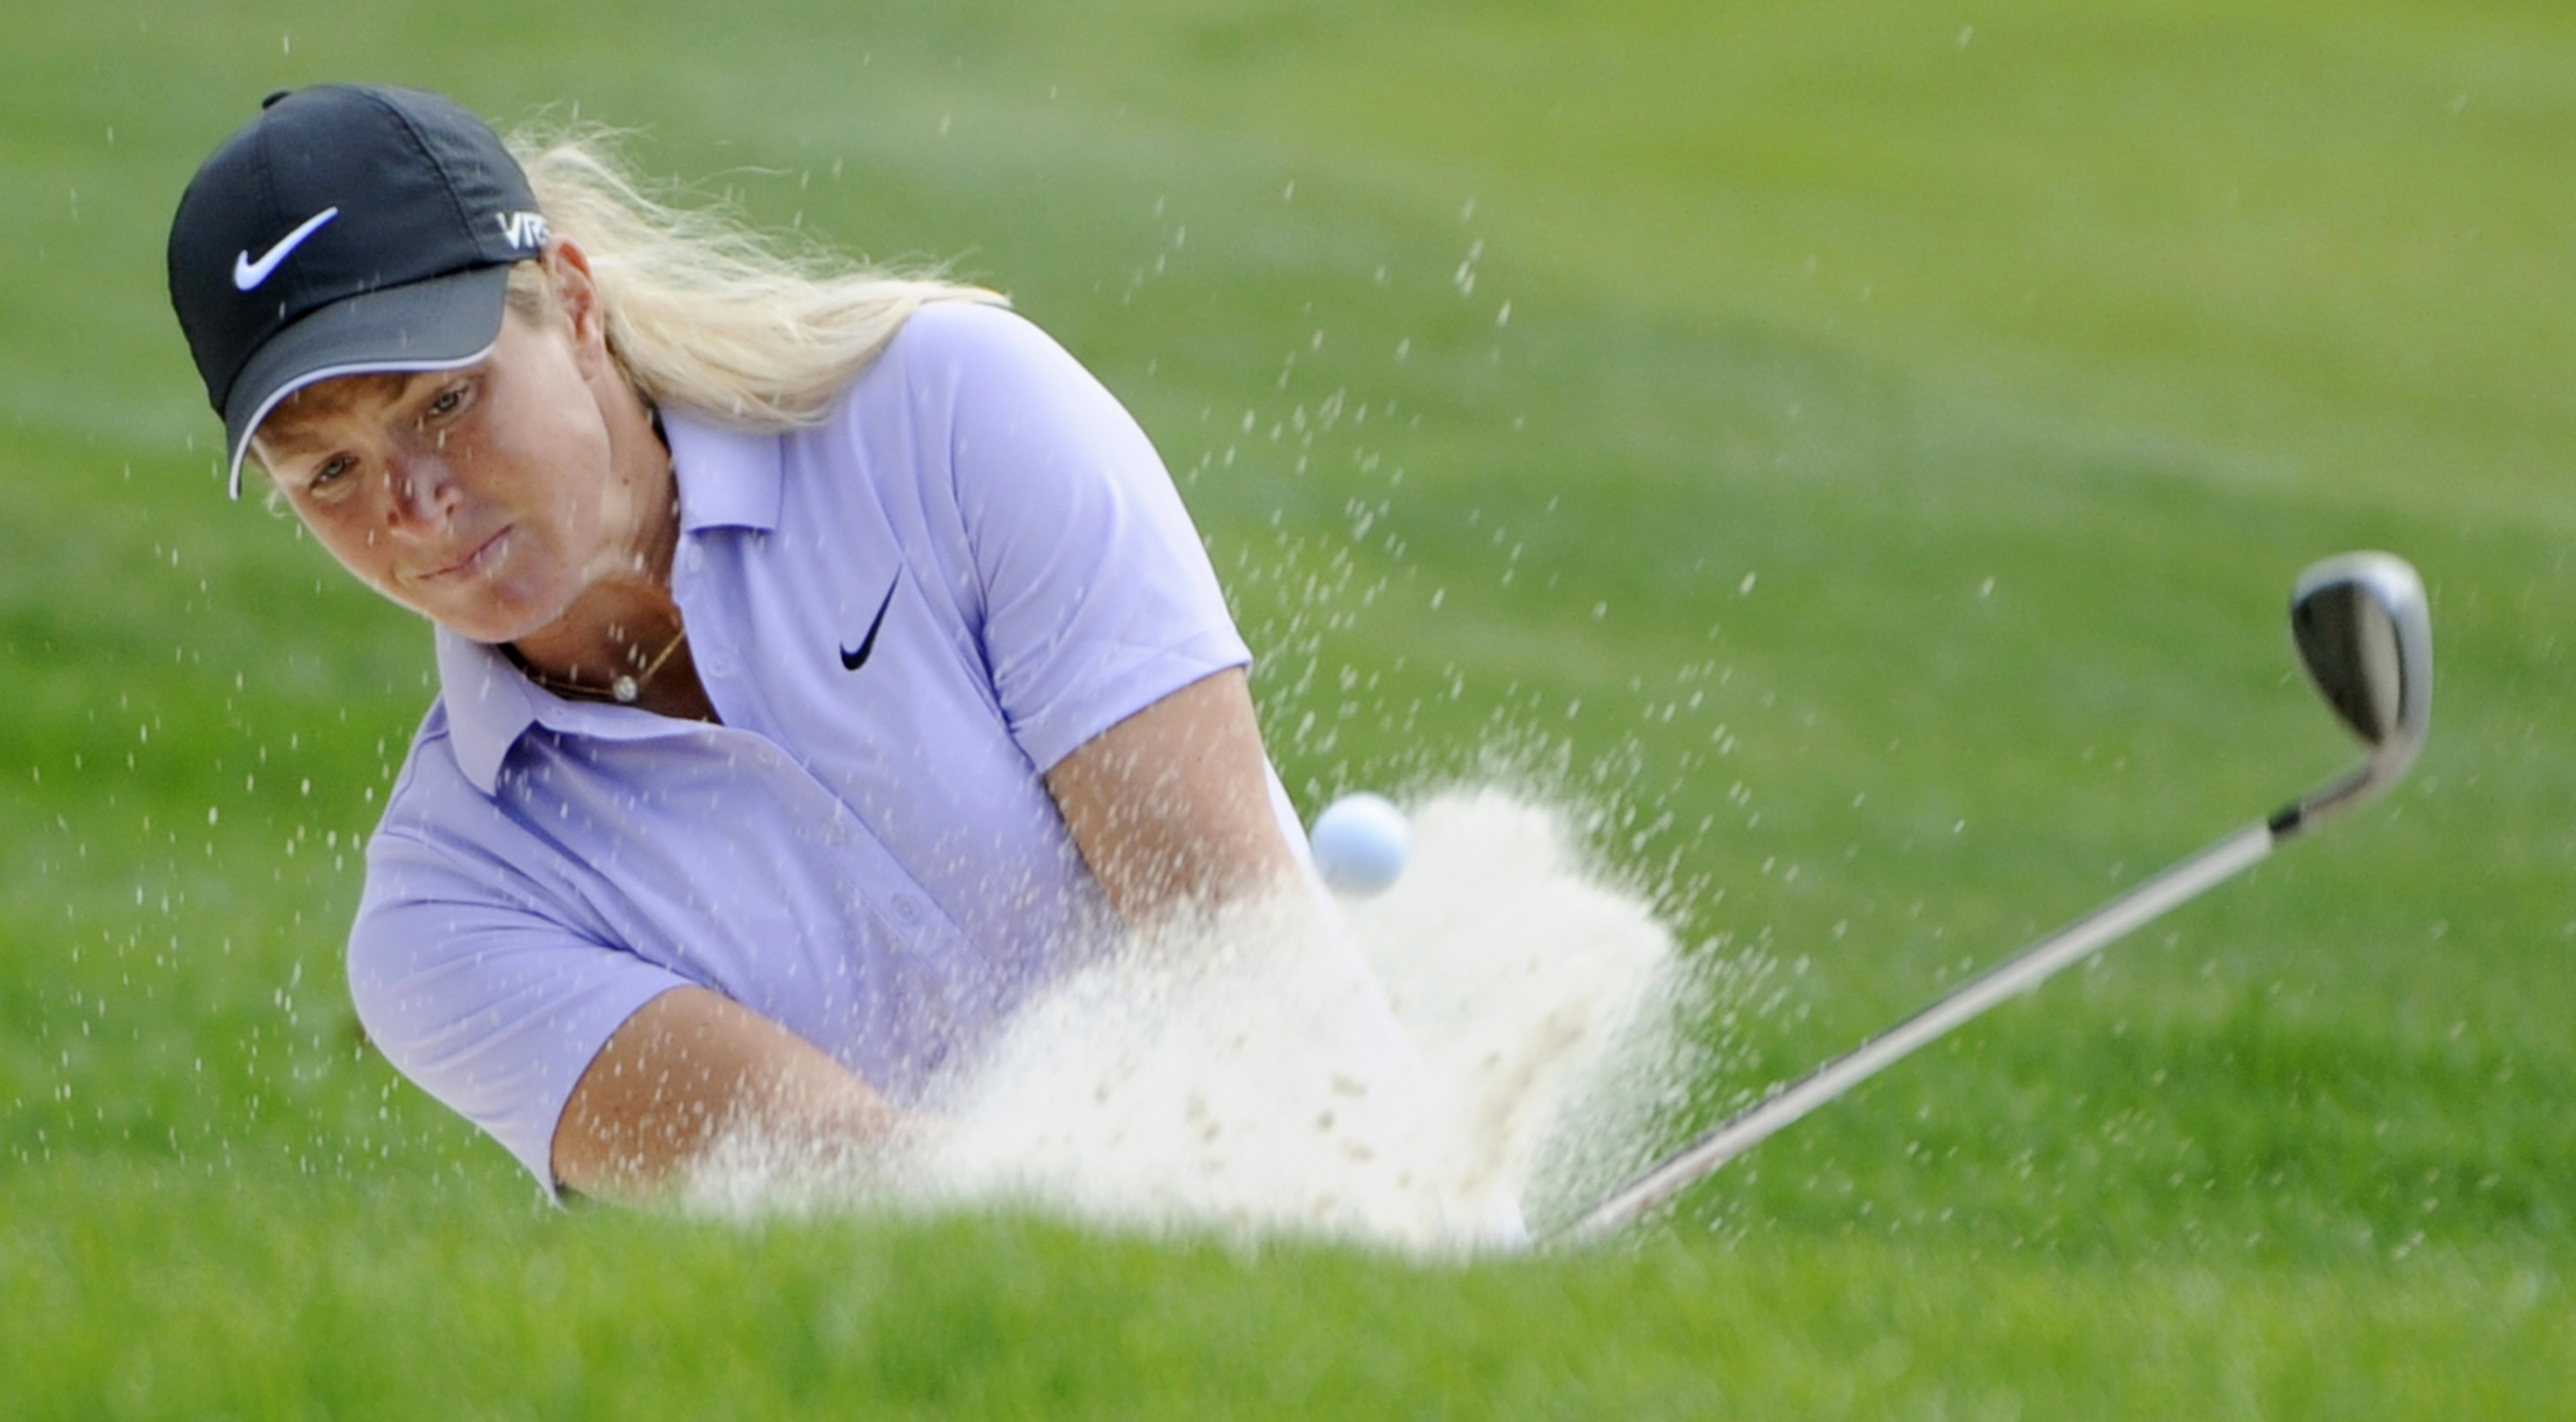 Suzann Pettersen made charge Saturday at the LPGA Portland Classic, shooting 5-under 67 for the second straight day and seizing a share of the lead.